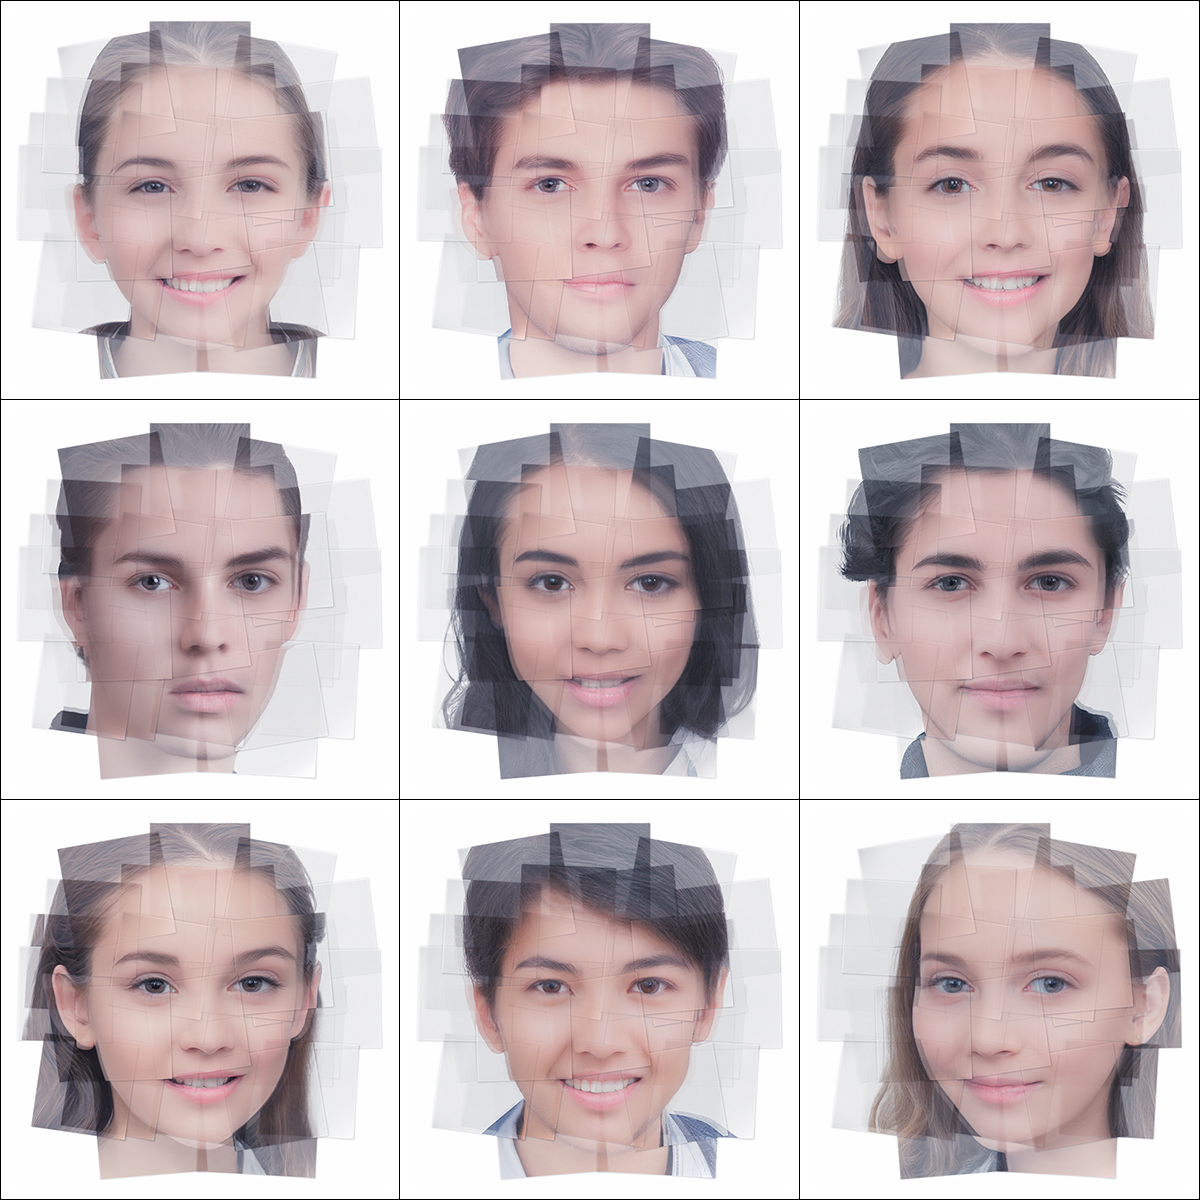 Generated Faces by Artificial Intelligence Teens 000 1 - 2019 - Generated Faces by Artificial Intelligence. Teens. V1